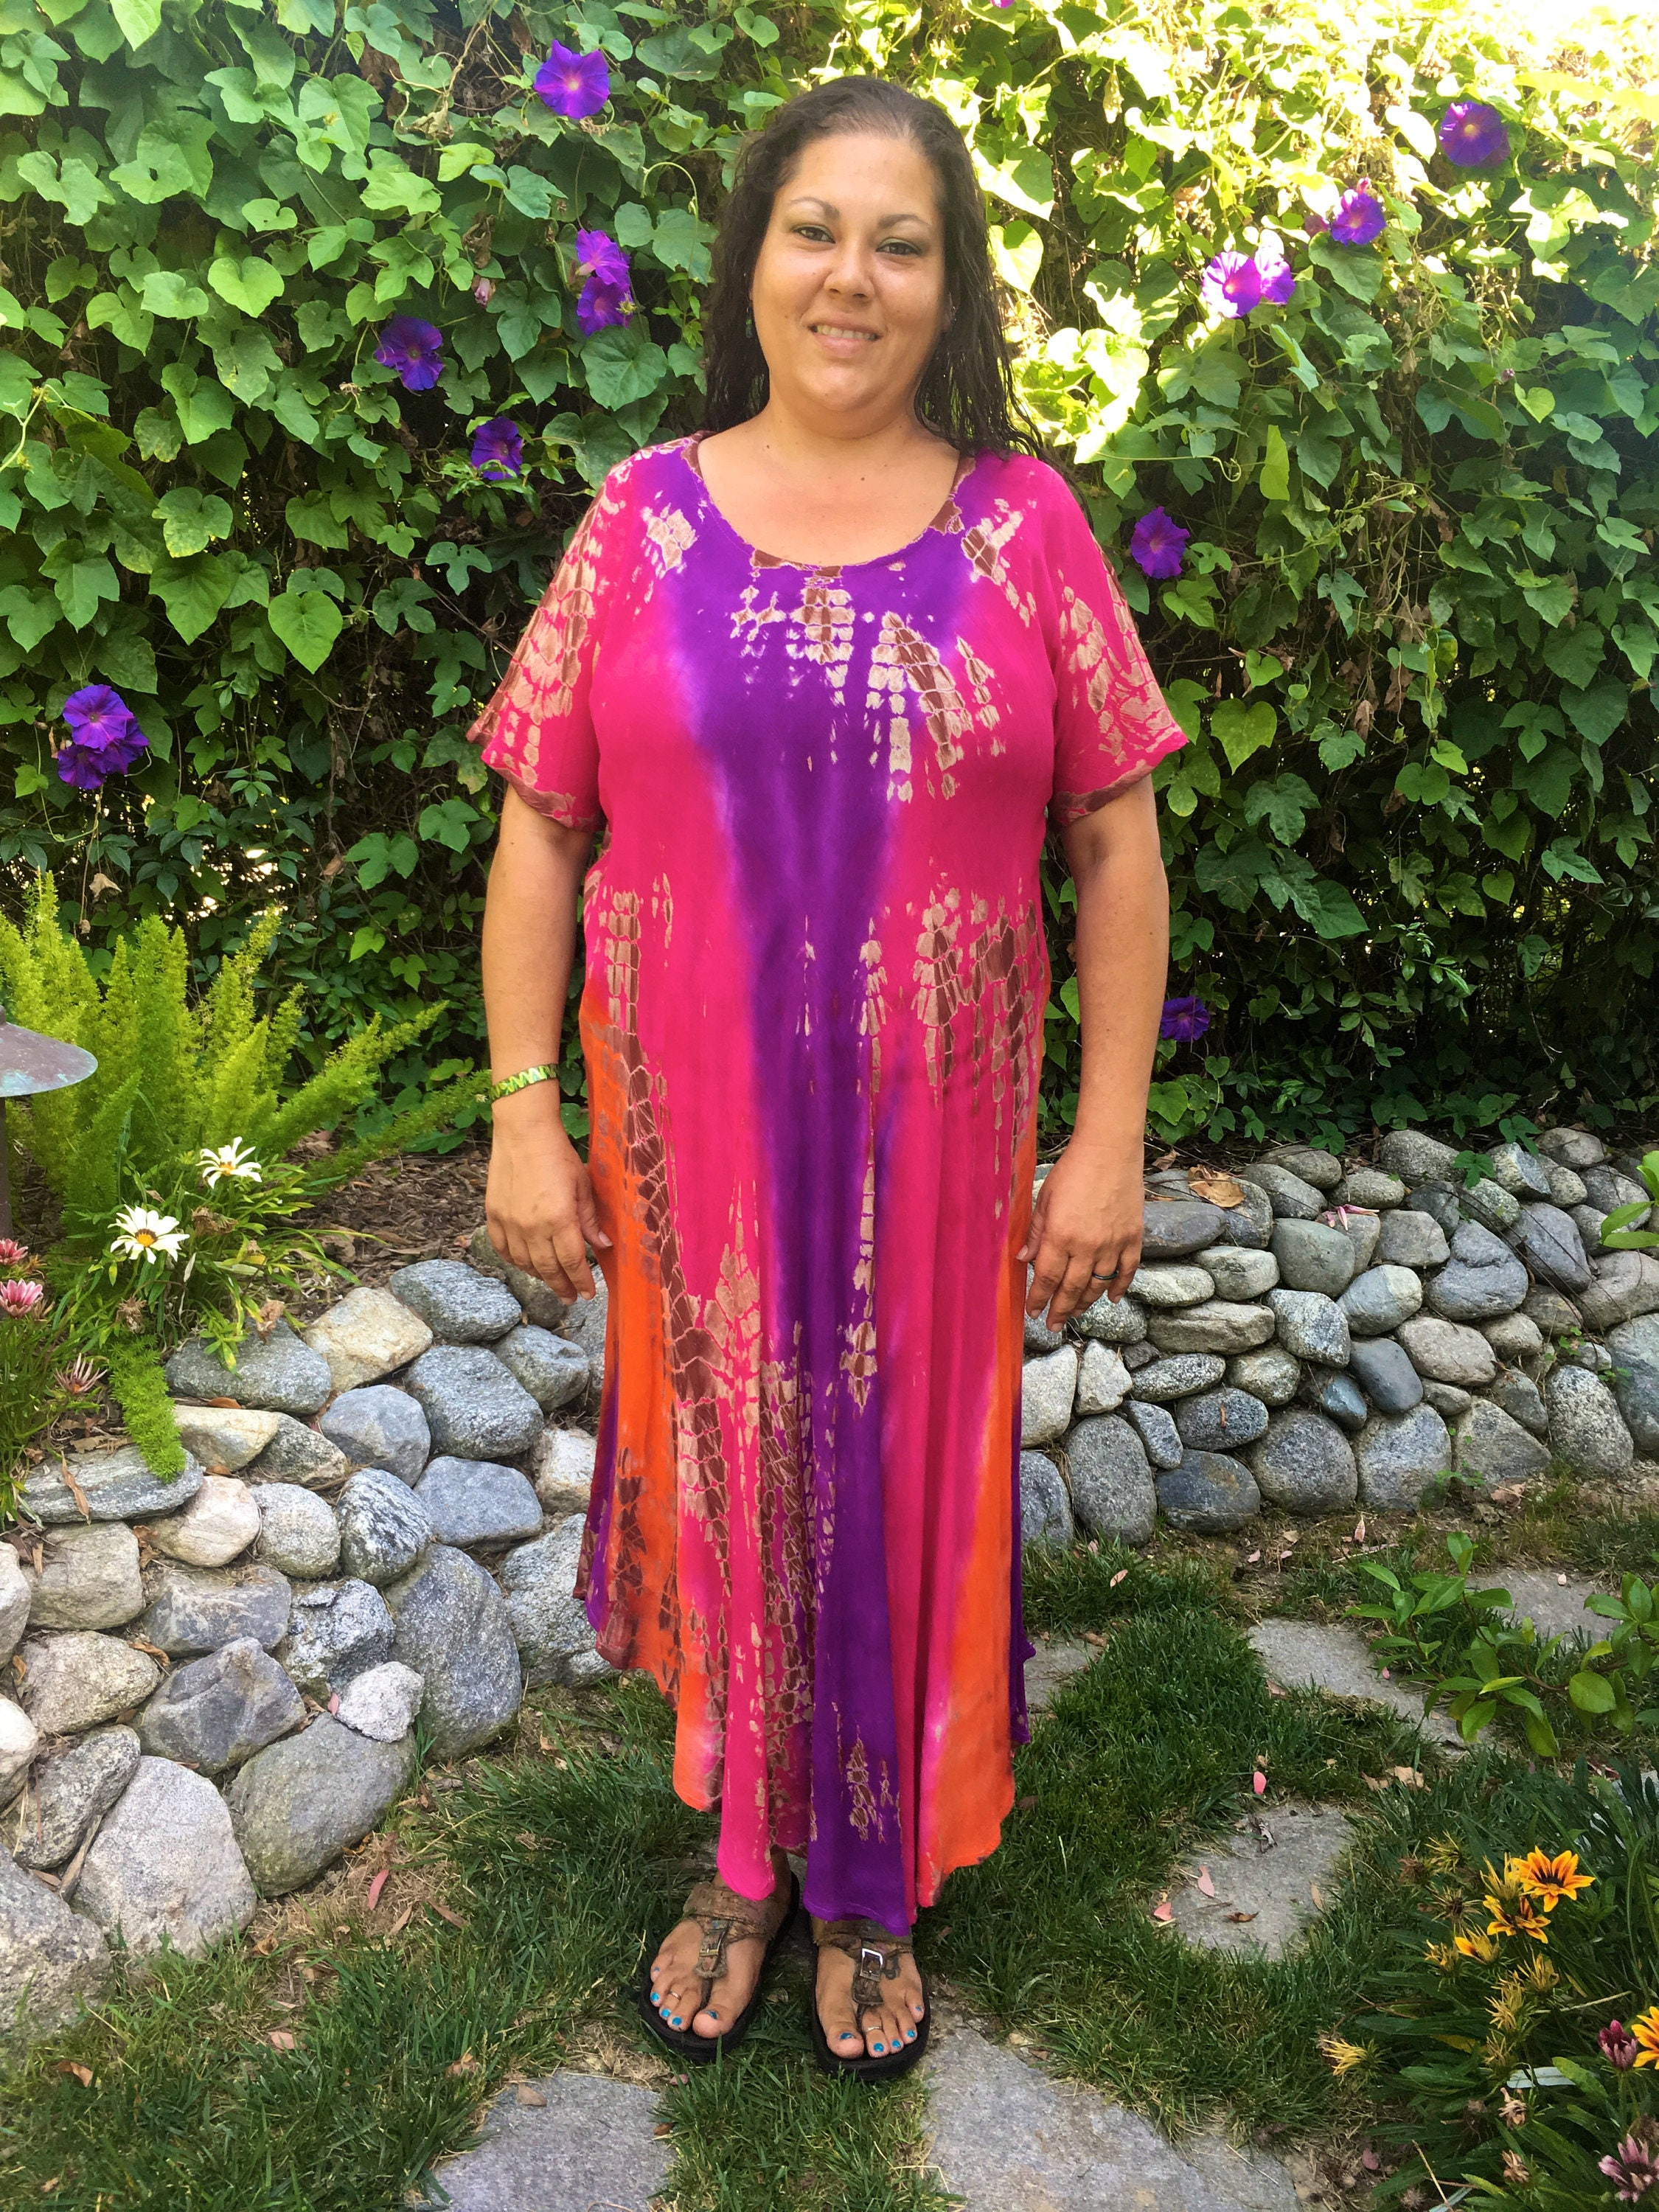 Plus Boho Dress Tie Dye Dress Plus Size Caftan Dress Cotton